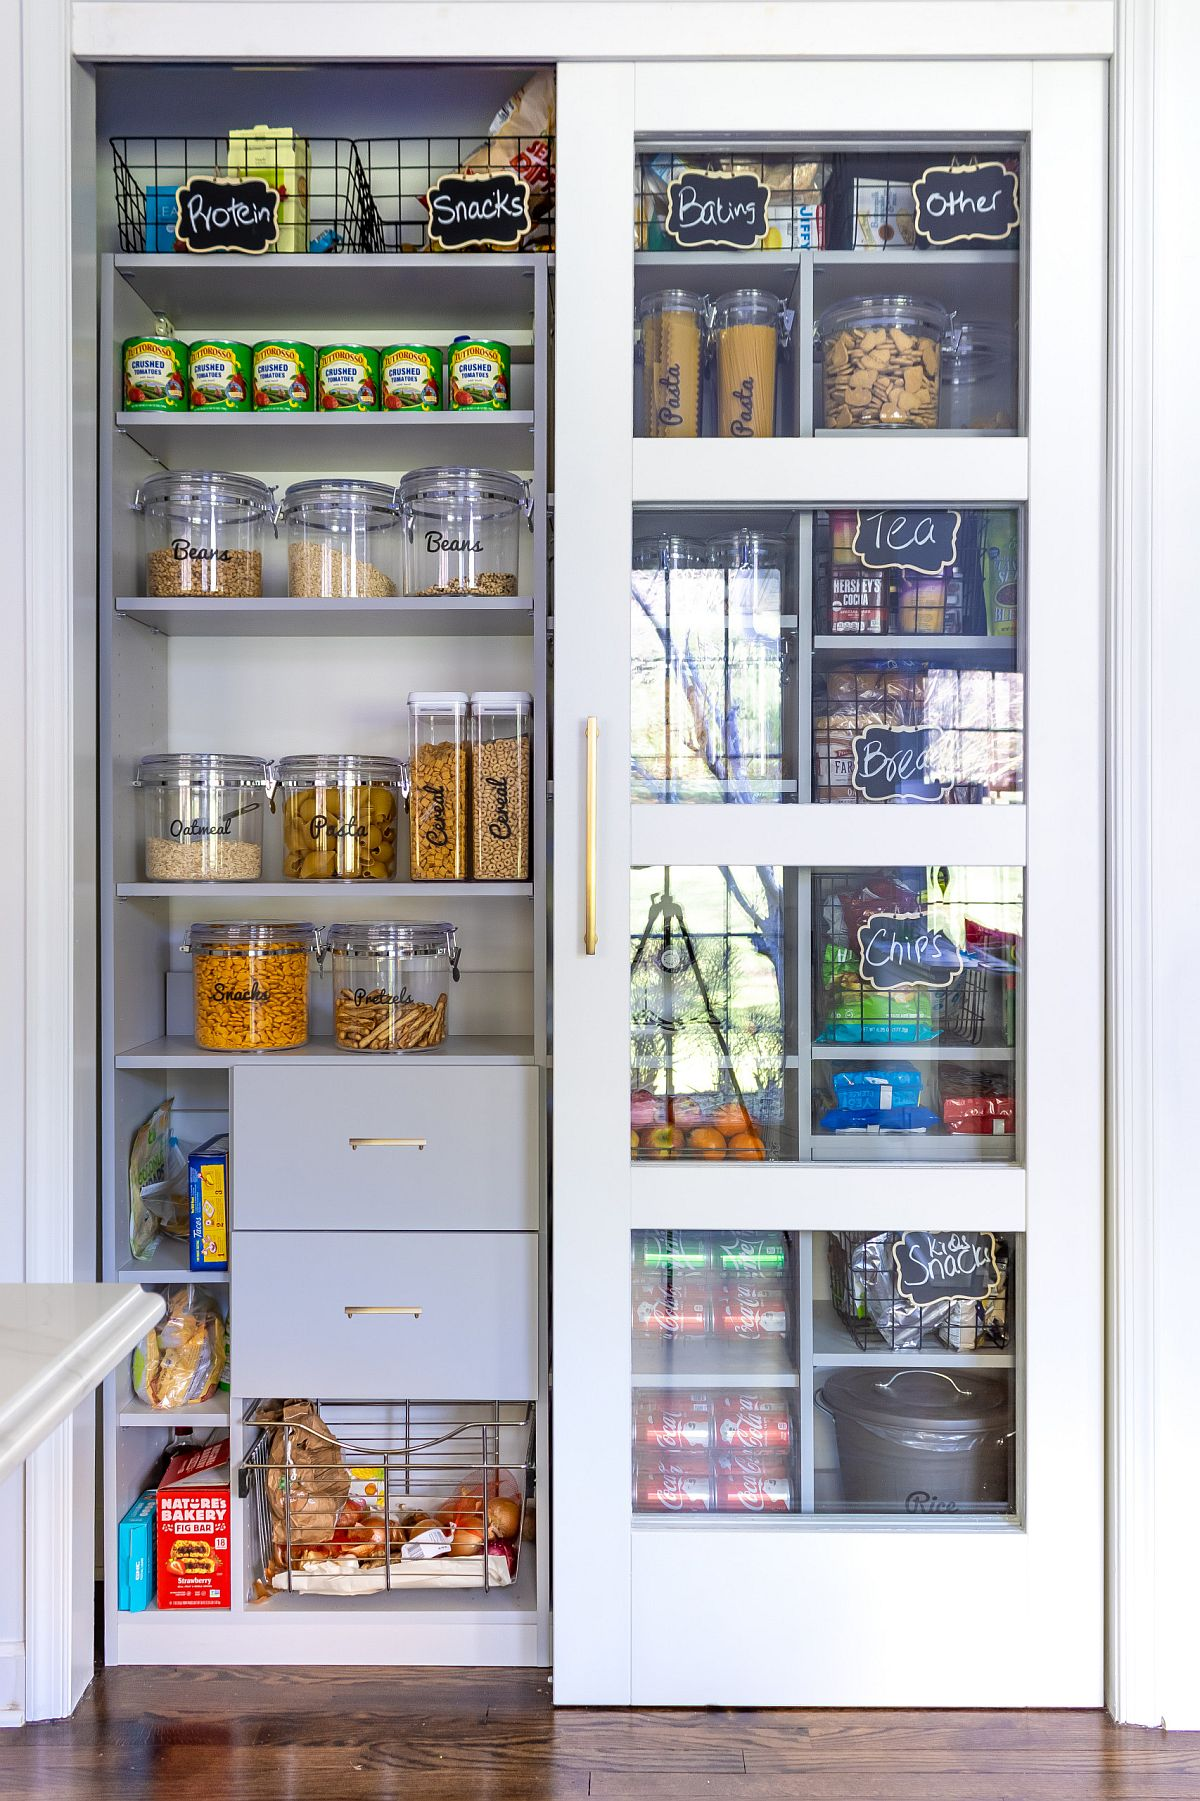 A-pantry-in-the-kitchen-allows-you-to-stock-up-and-organize-with-ease-22006